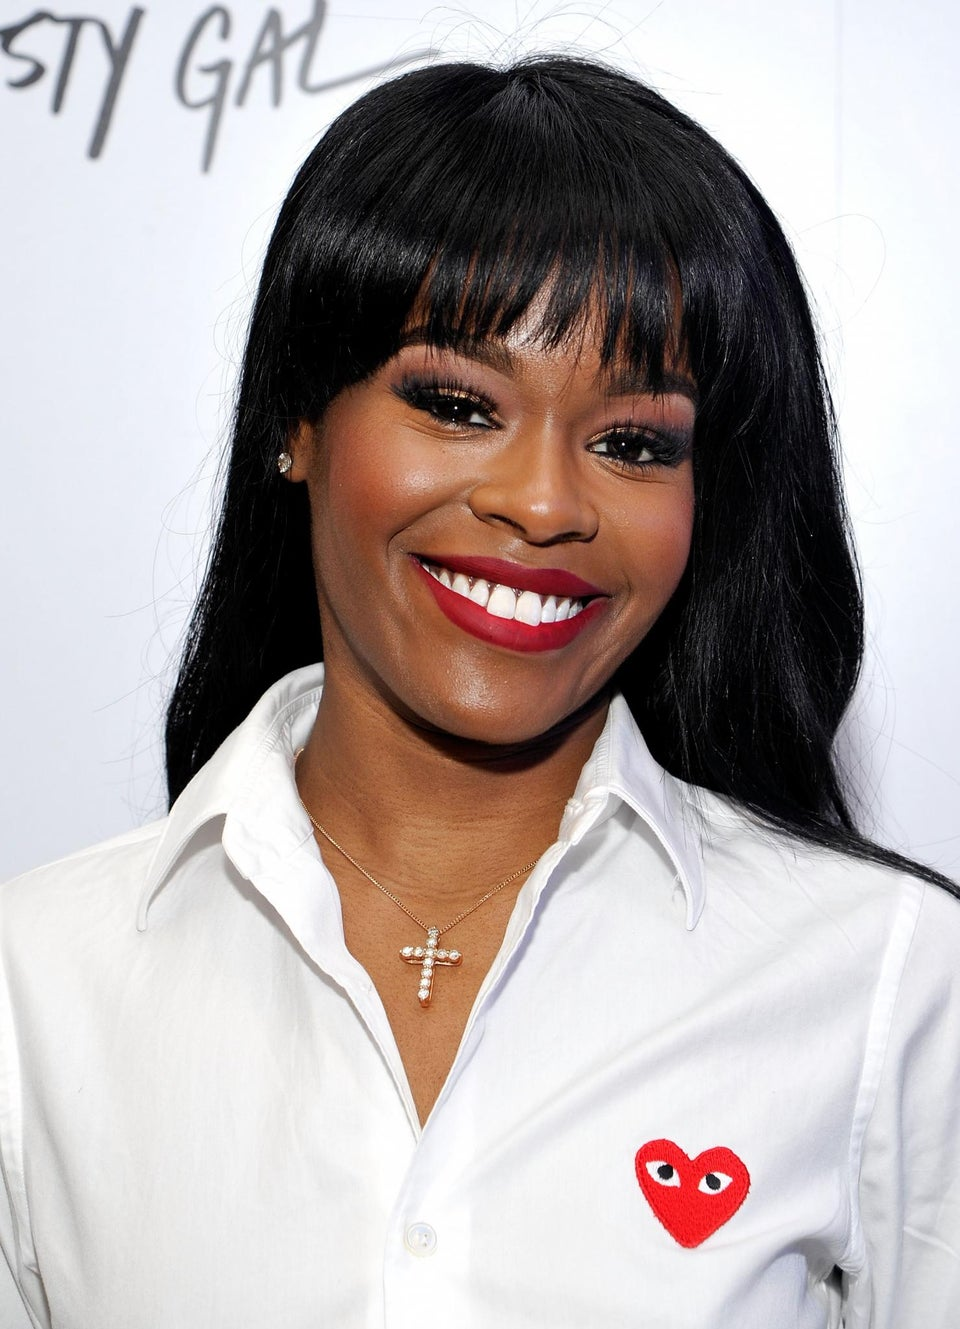 Did Azealia Banks Really Get Into A Physical Altercation With Russell Crowe?